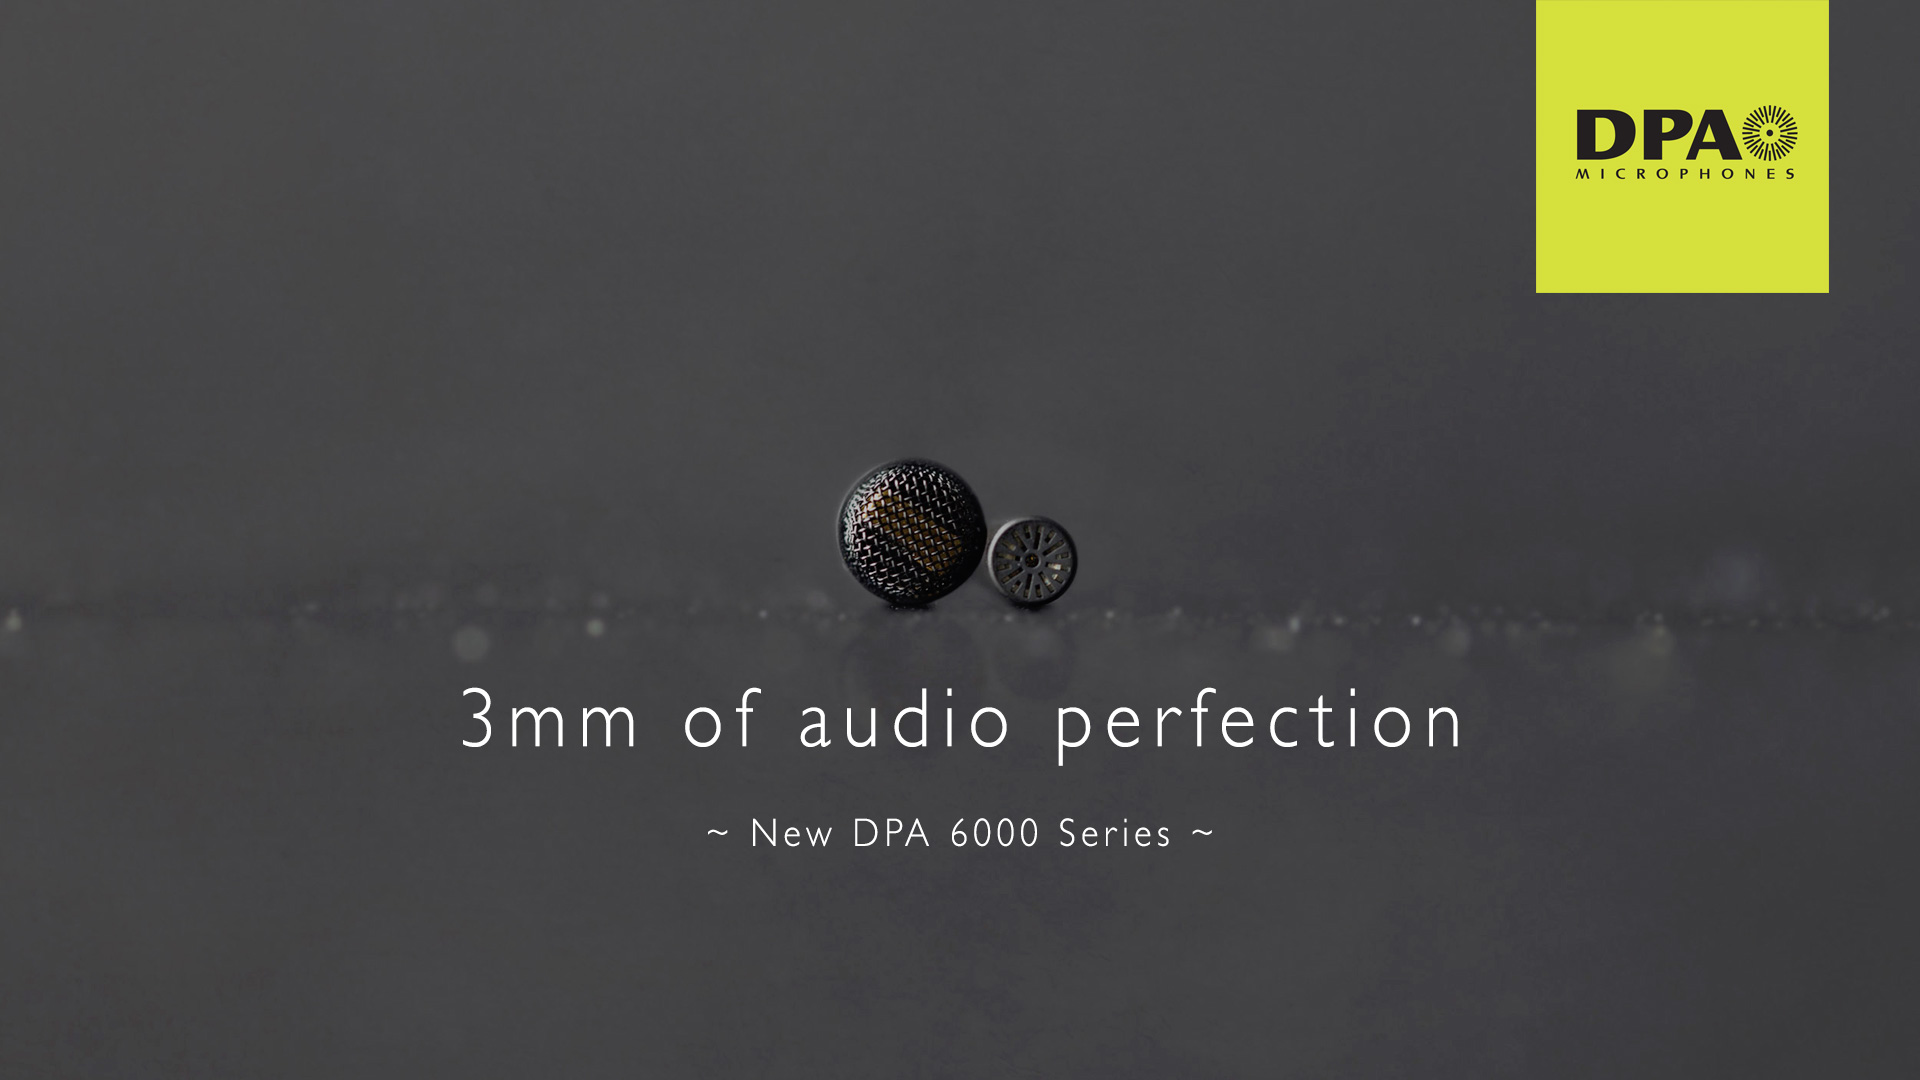 DPA Microphones 6000 Series Launched